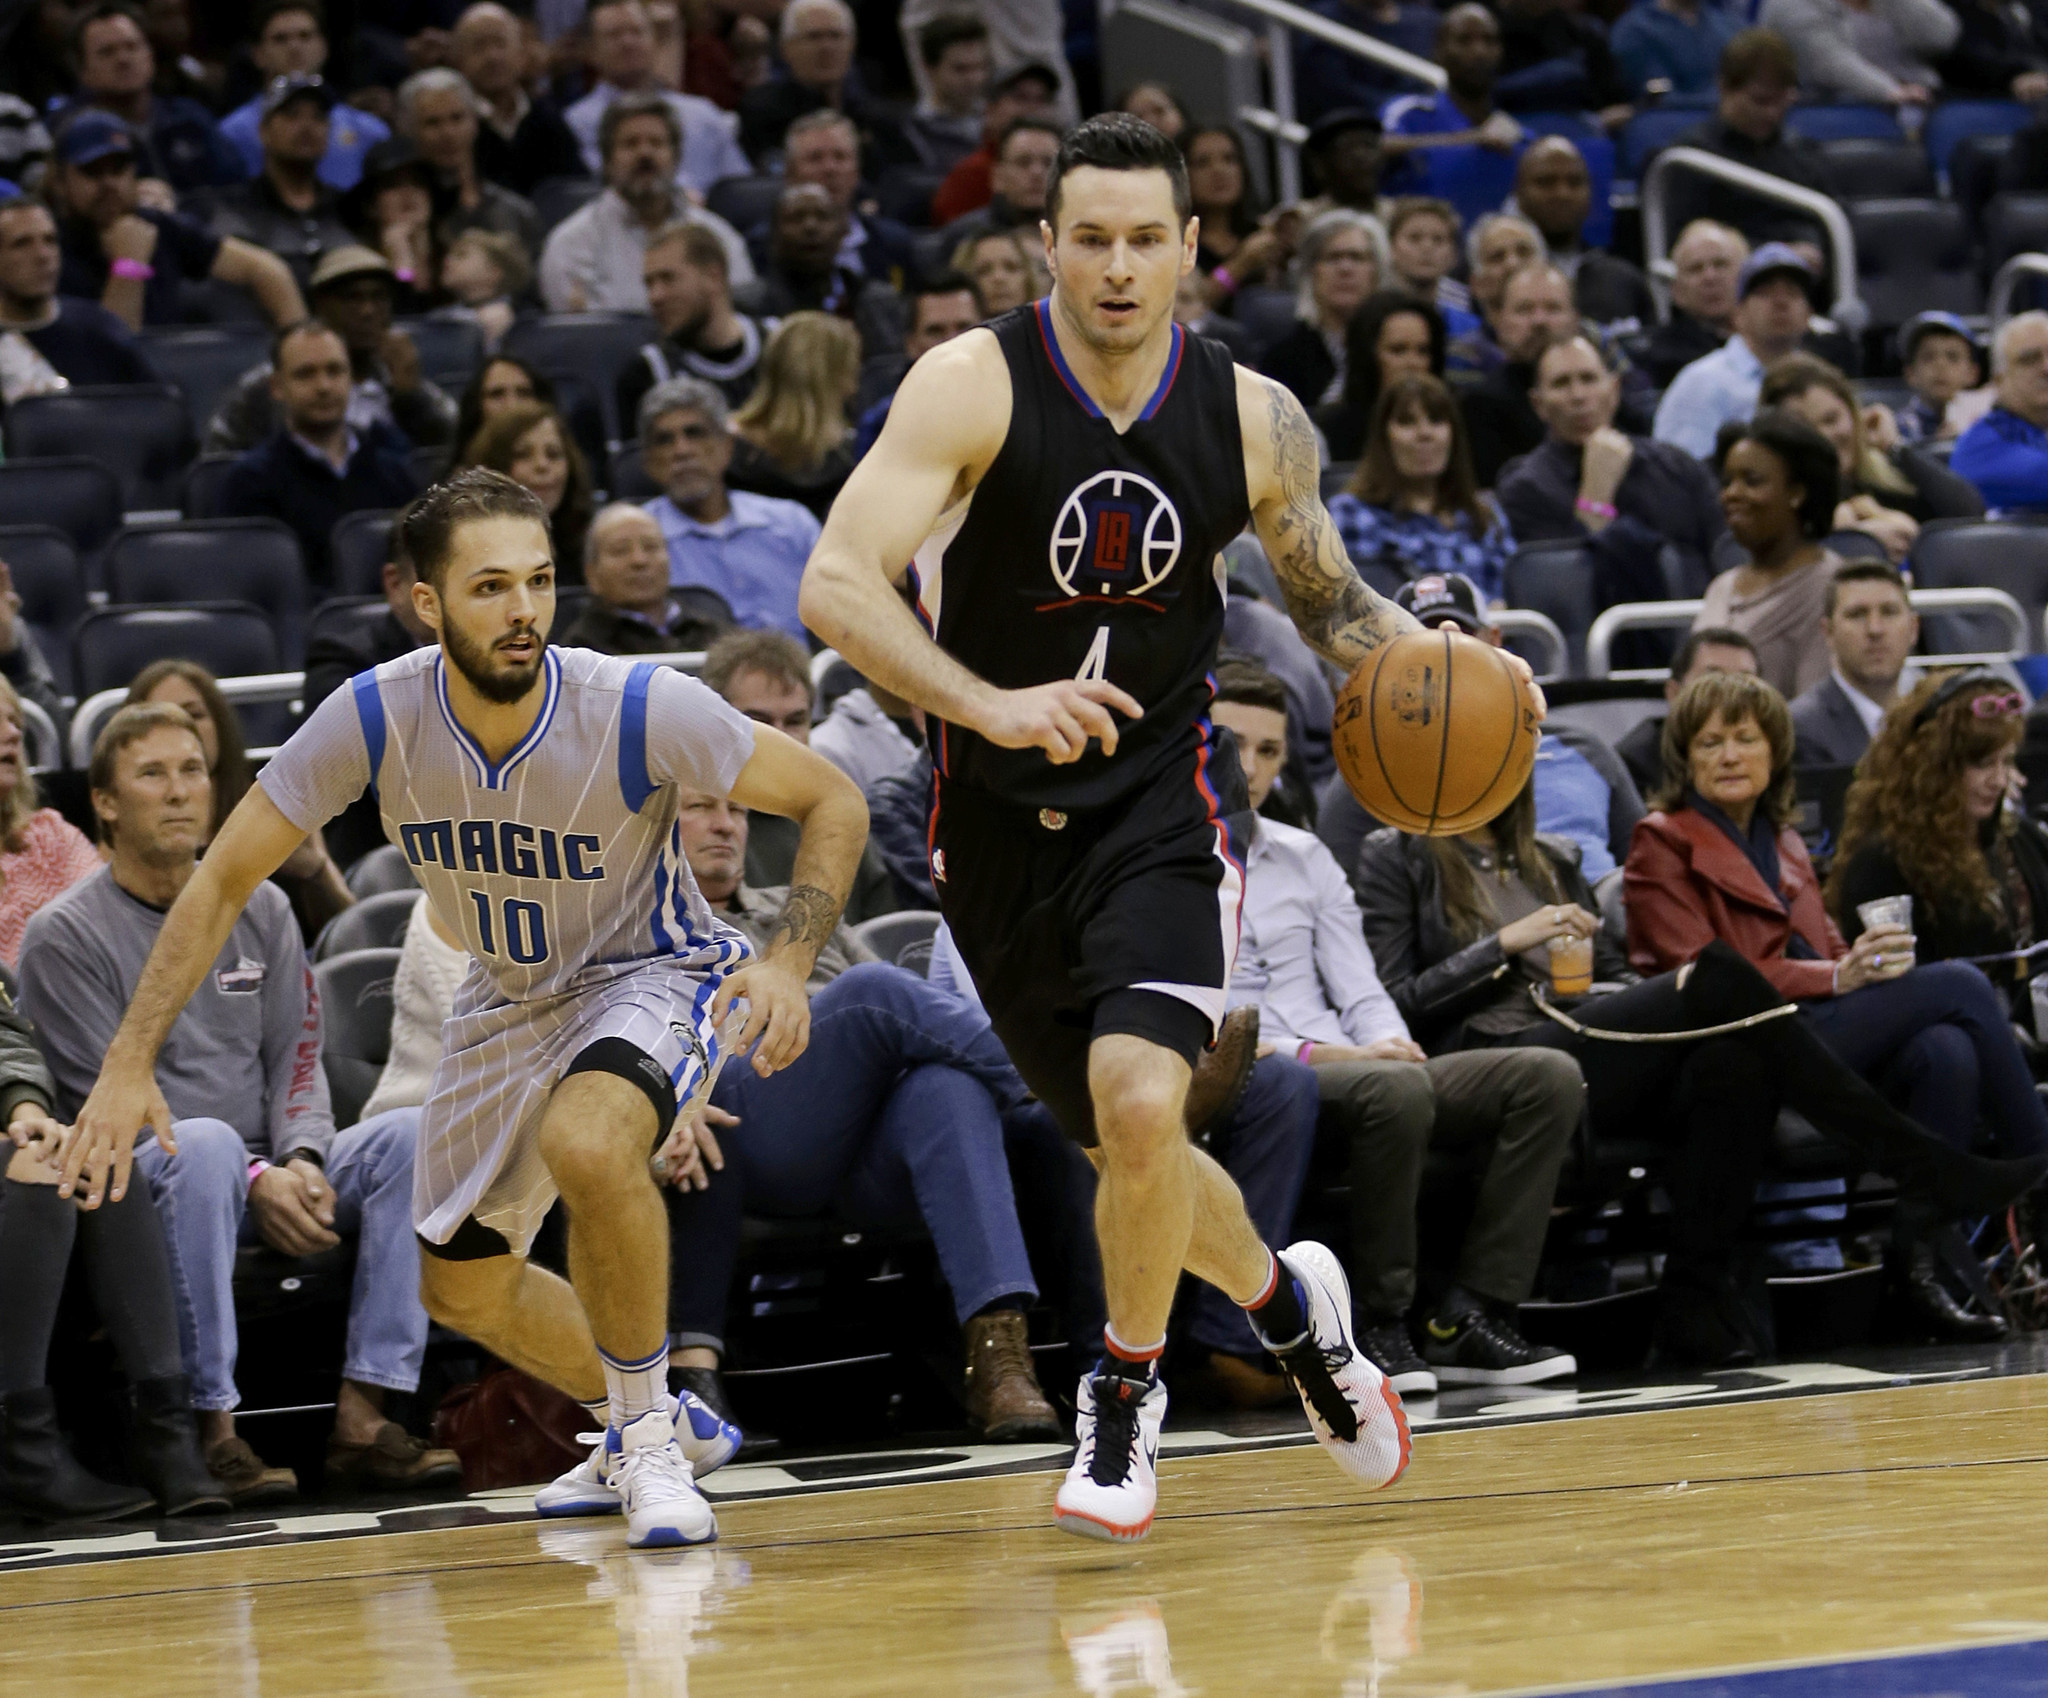 La-sp-clippers-report-20160207